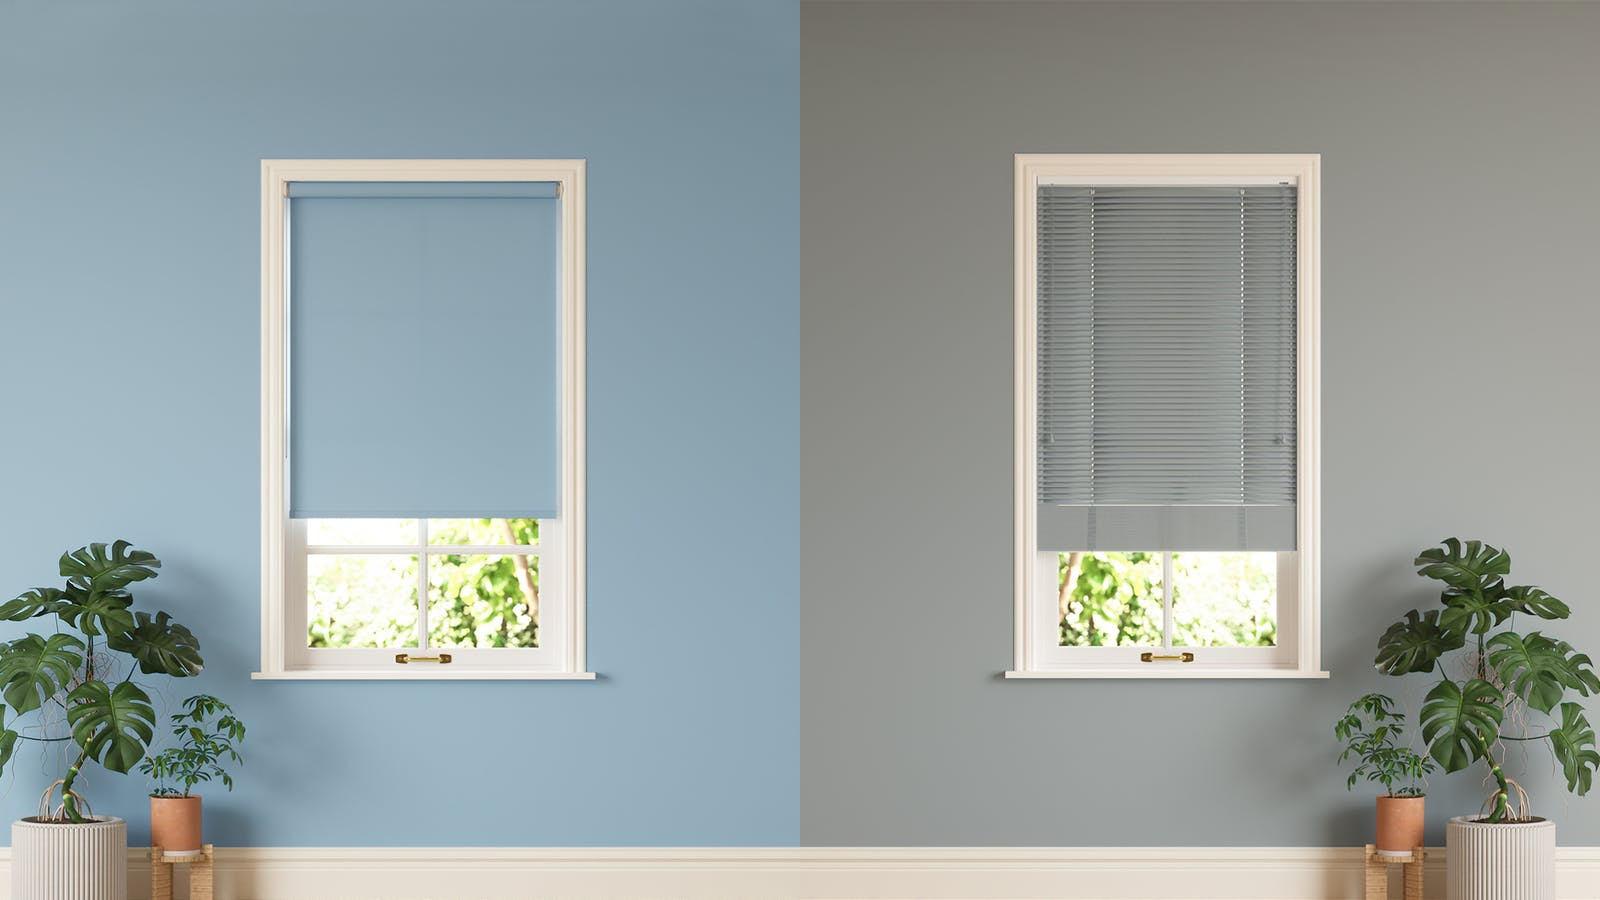 Lick blue roller blinds against Lick grey Venetian blinds